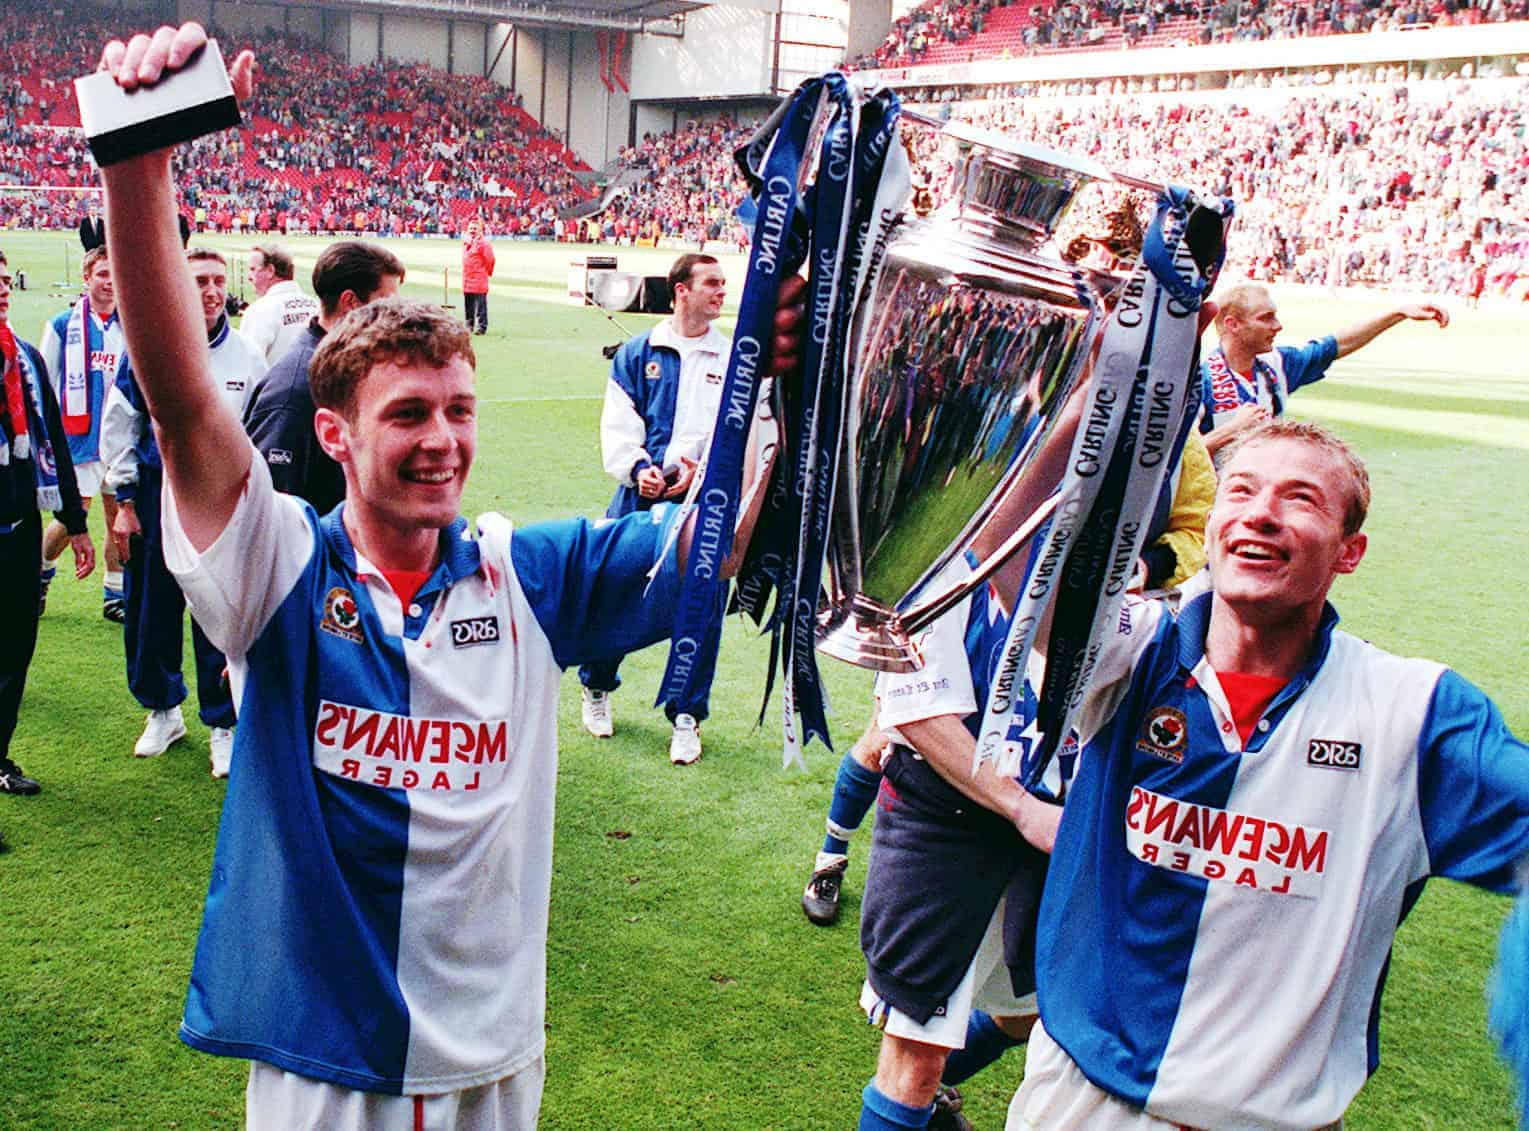 Shearer, Sutton, Anfield, Blackburn, title win 1995 (John Giles/PA Archive/PA Images)